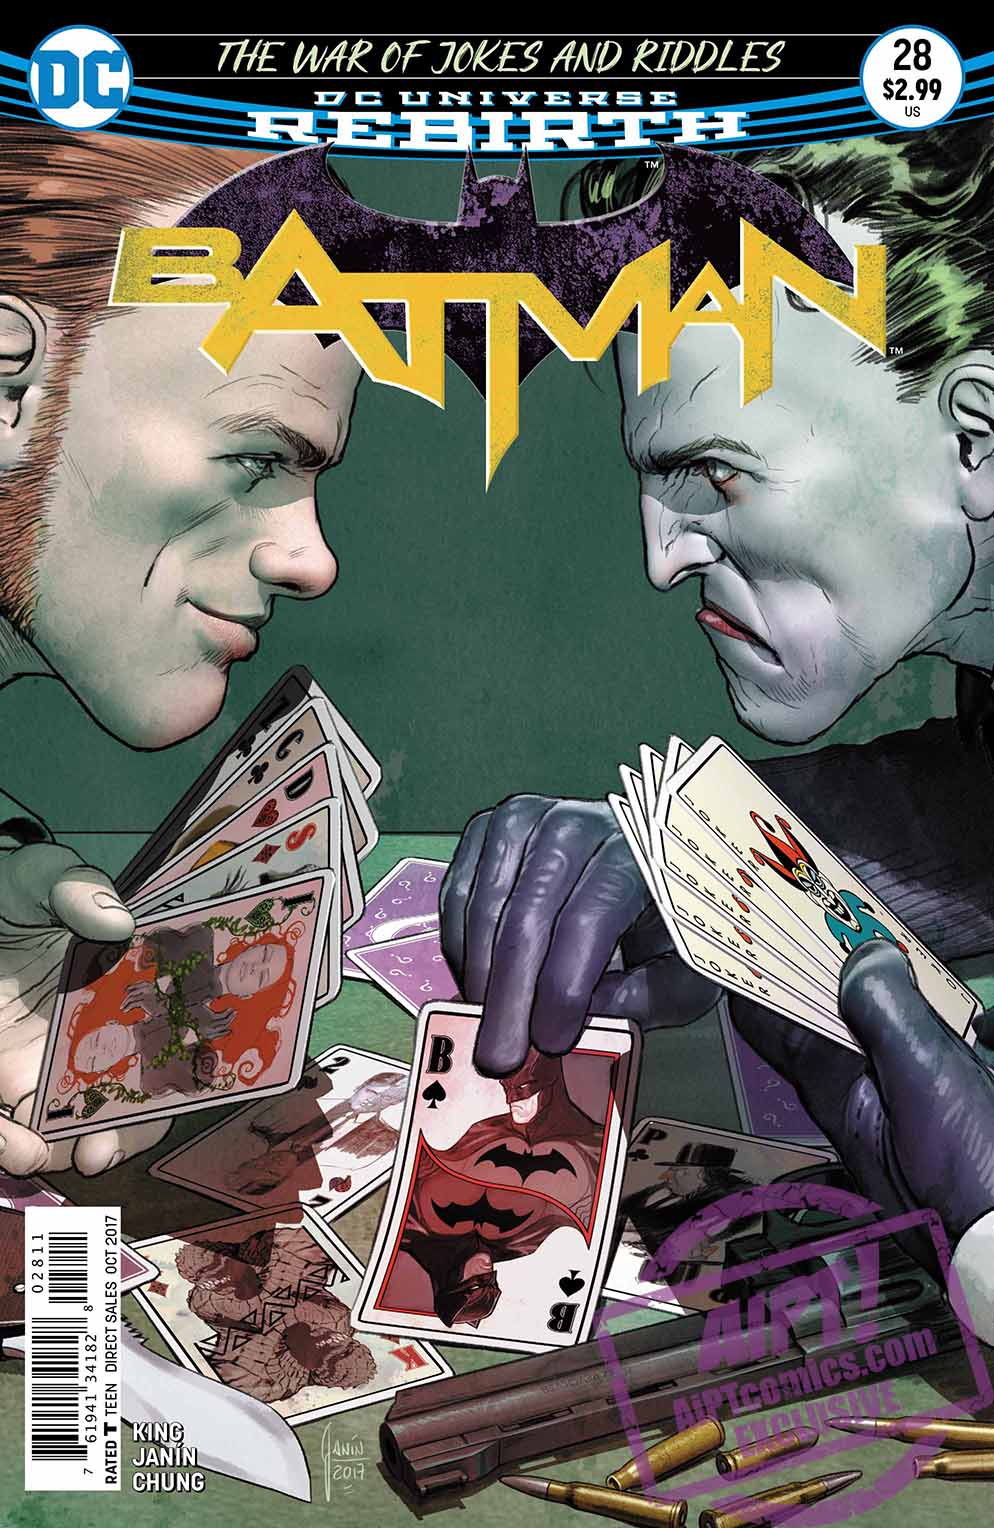 Batman #28 Review: Deadshot and Deathstroke go head-to-head with Batman caught in the middle as 'The War of Jokes and Riddles' escalates